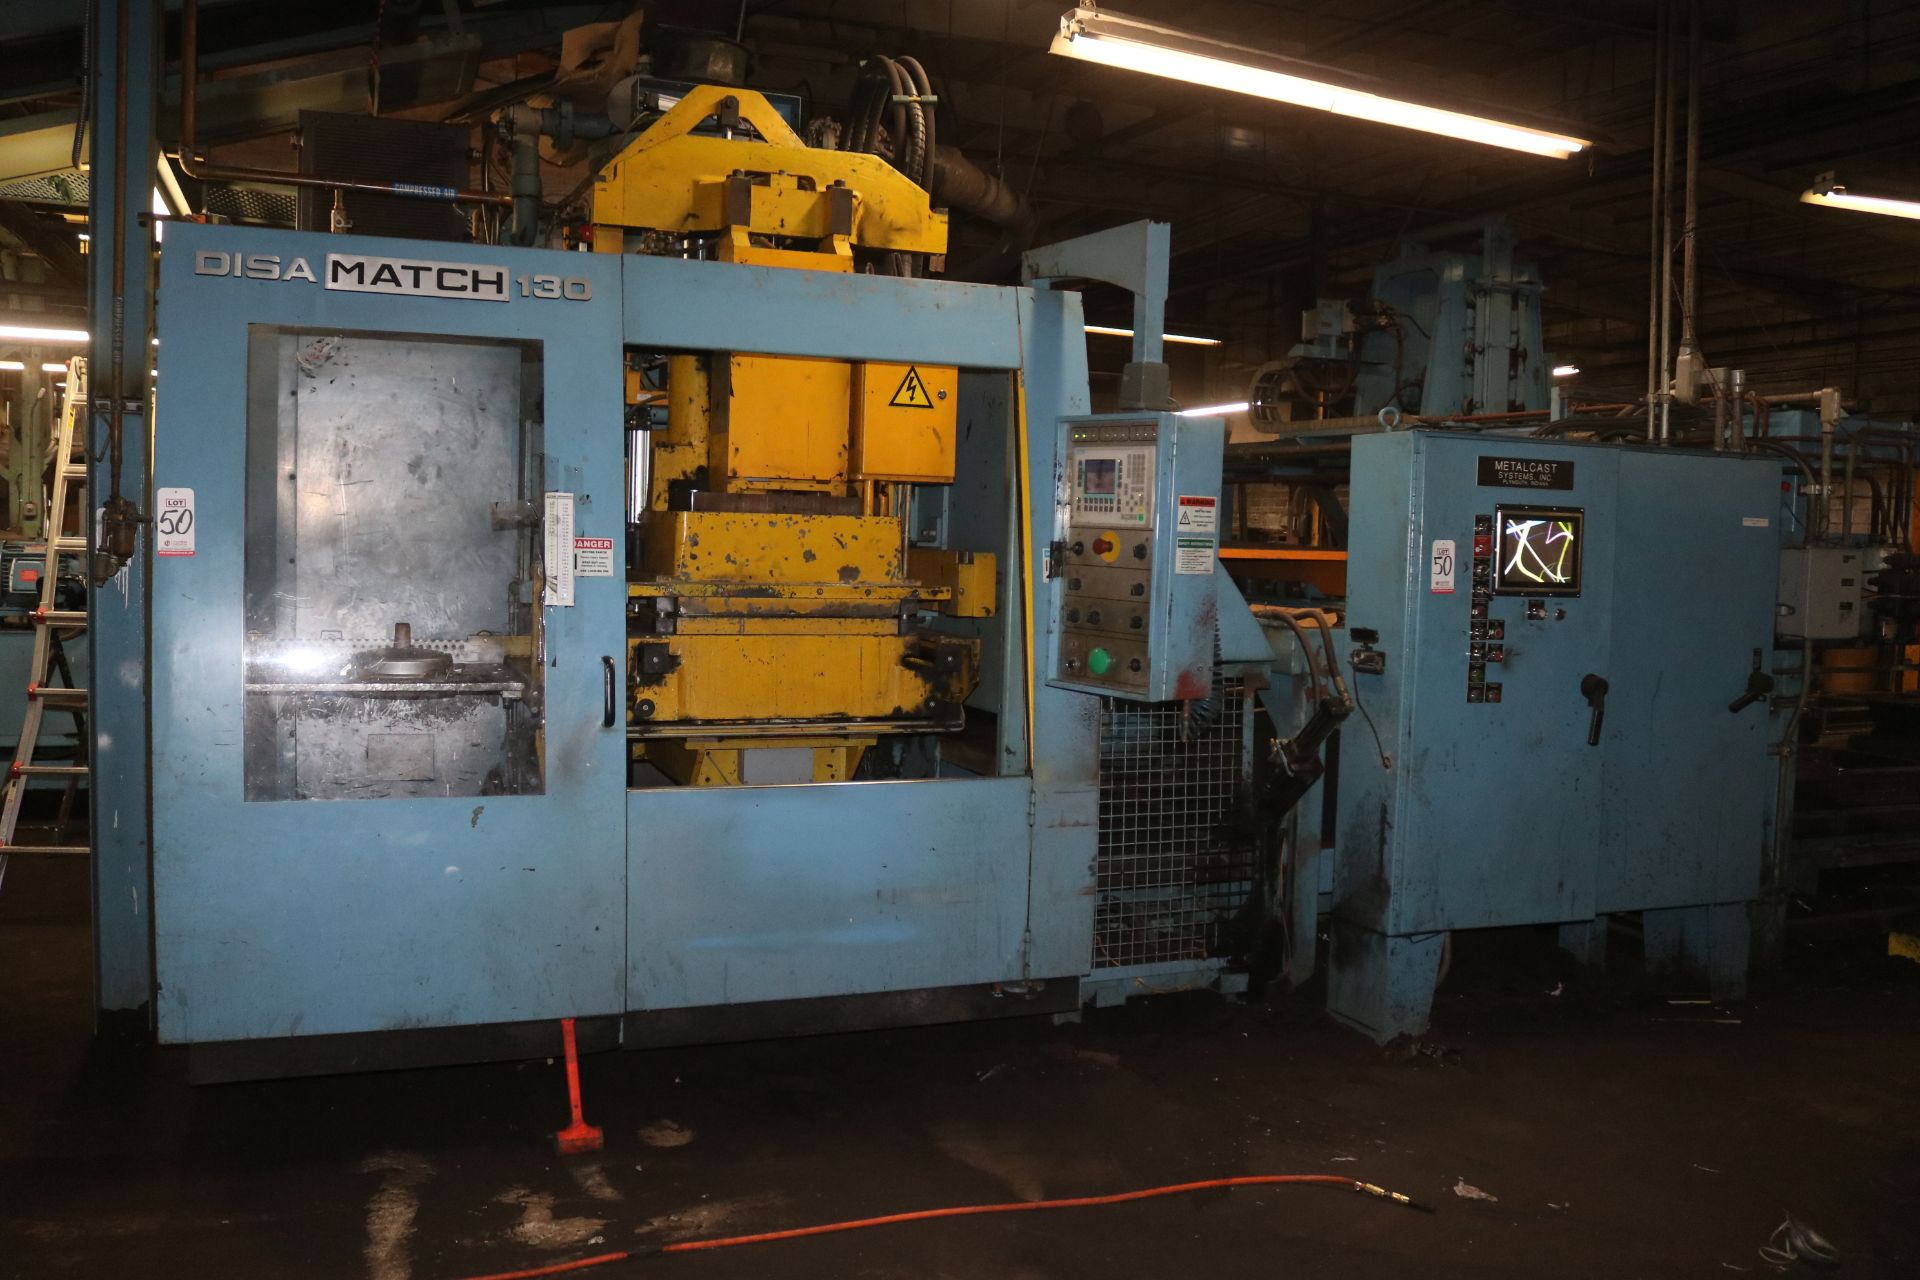 "Lot 50 - 2001 DISAMATIC MODEL DISAMATCH 130 AUTOMATIC MOLDING MACHINE, FEED 24"" X 20"" FLASKS, BELT CONVEYOR"